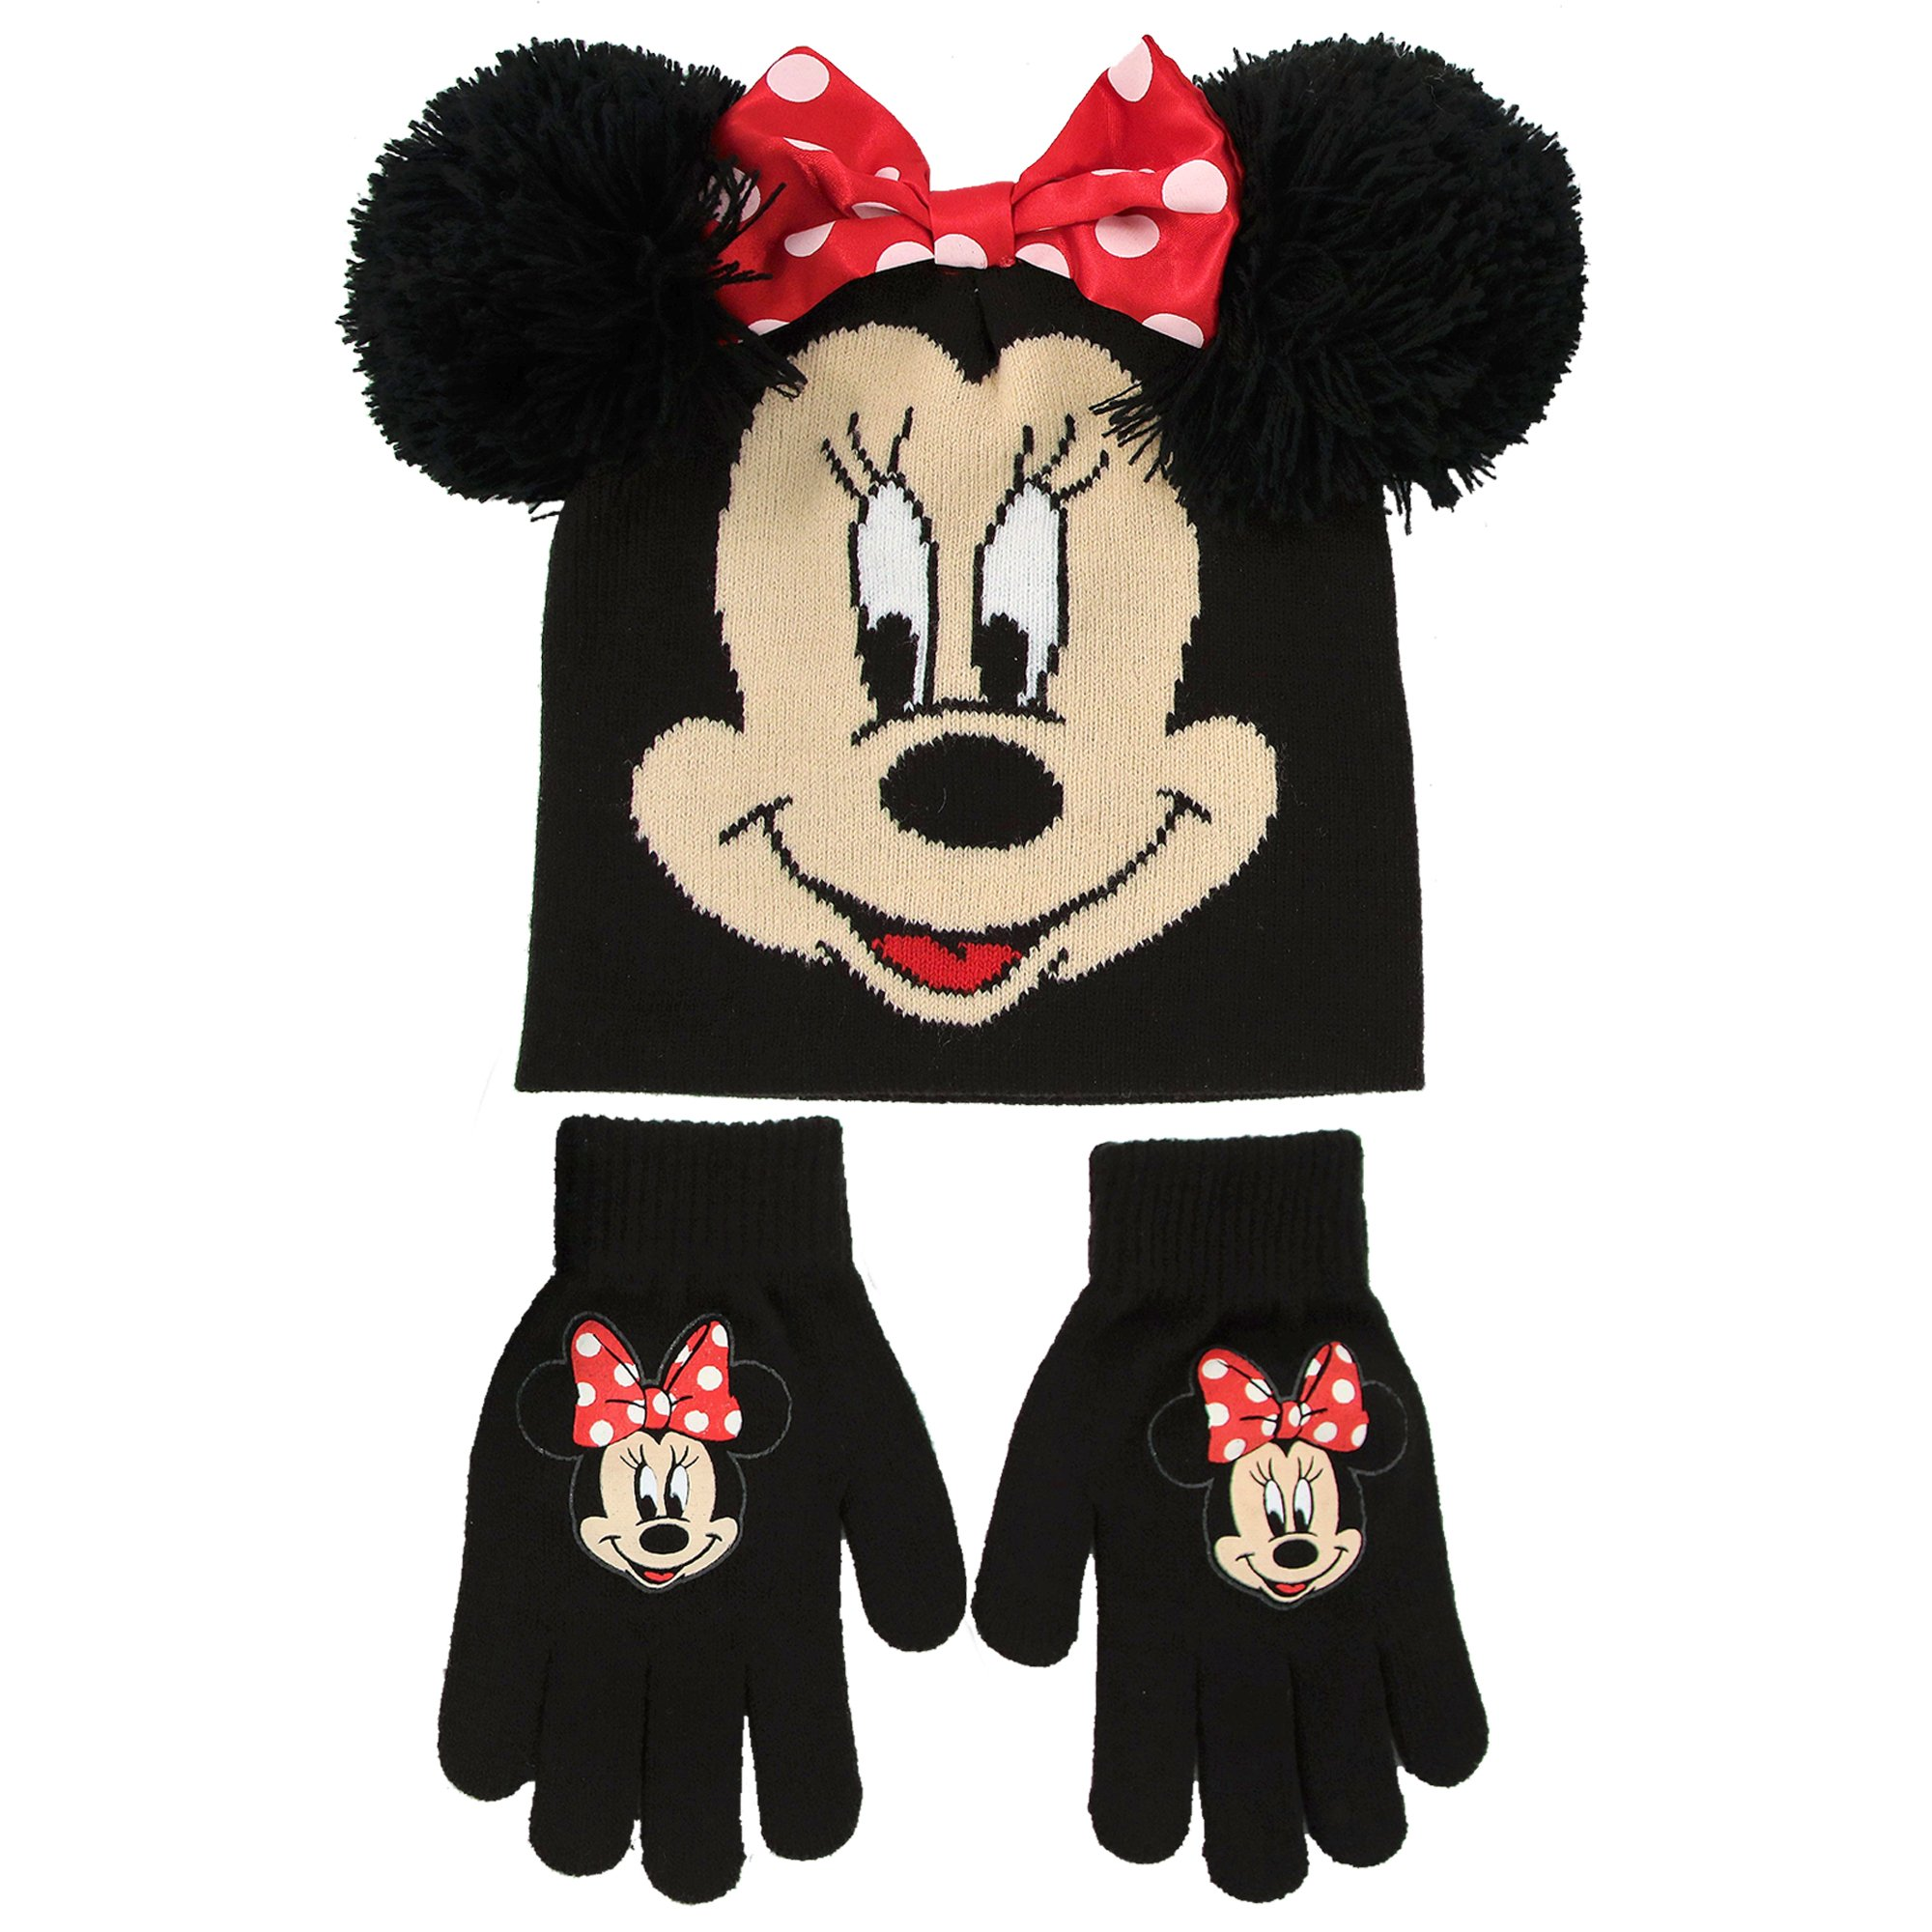 e86ee257ff1 Galleon - Disney Little Toddler Girls Minnie Mouse Beanie Hat And Gloves  Set